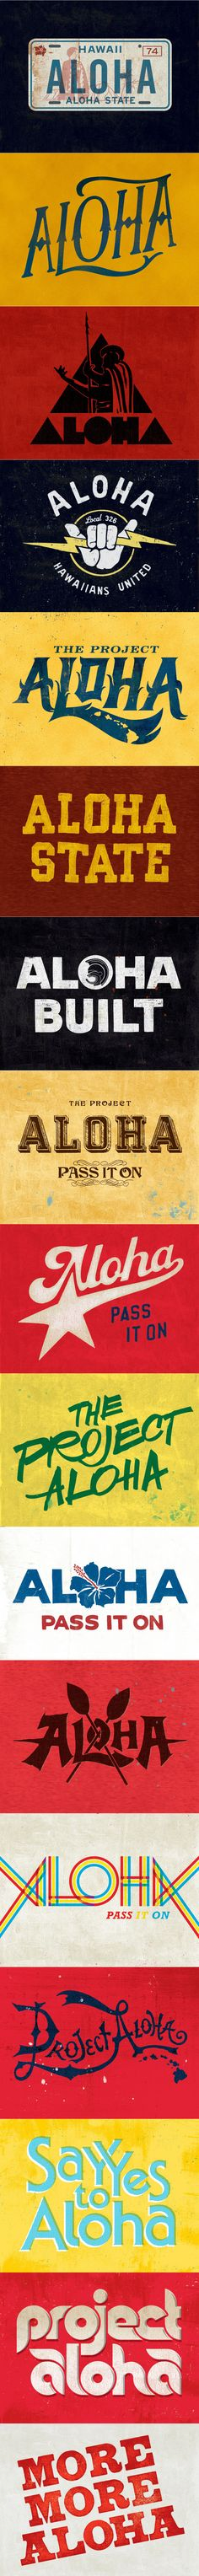 Say yes to Aloha!